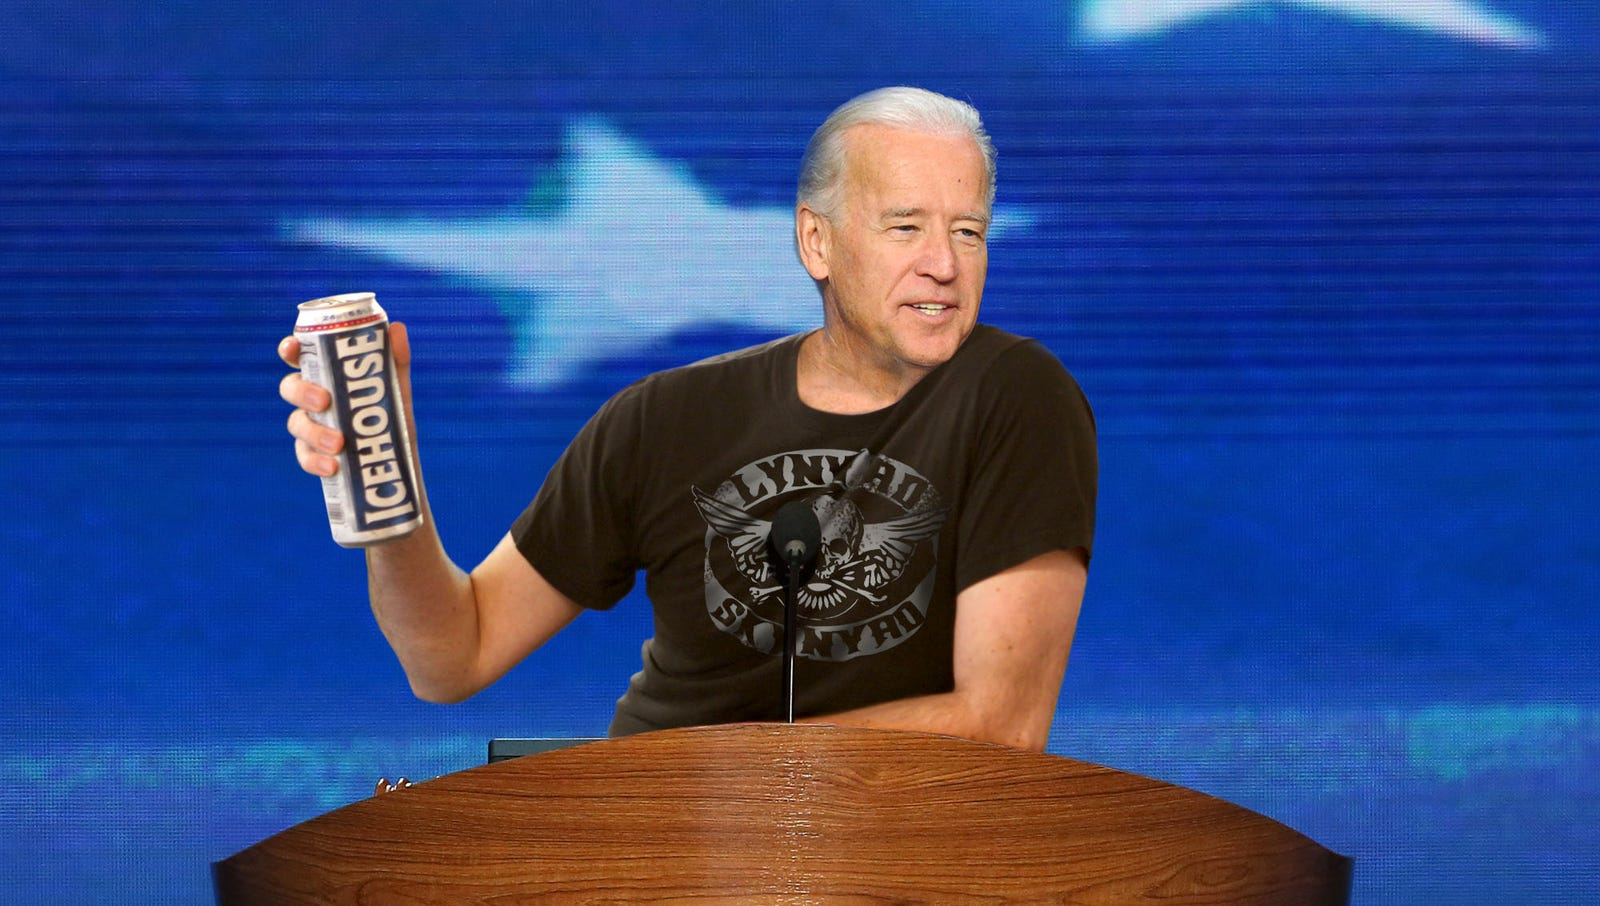 Biden Says Life Better Than It Was 4 Years Ago But Nothing Can Touch Summer Of '87